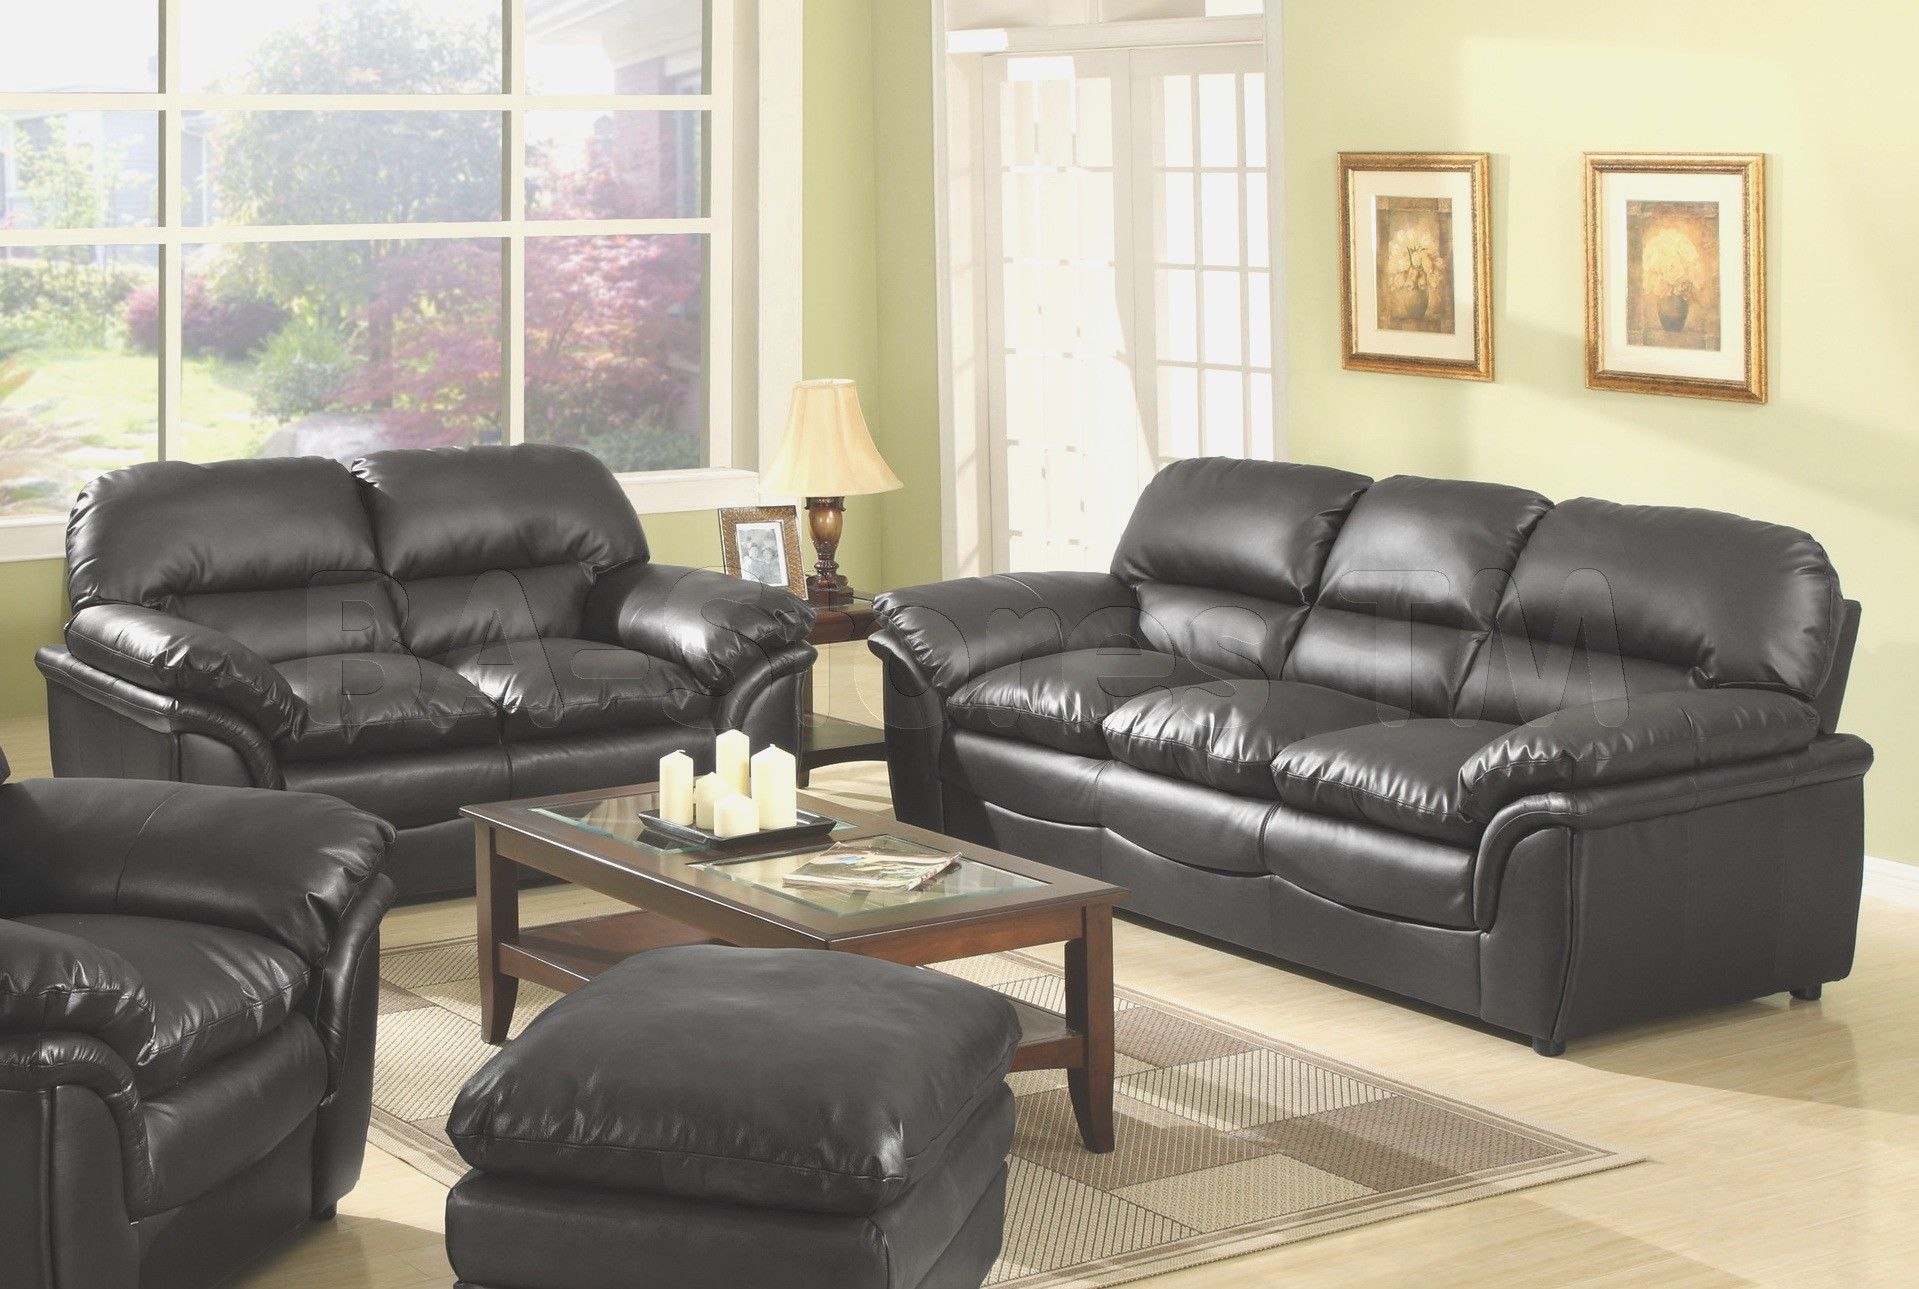 Leather Living Room Furniture Sets Ashley Furniture Leather Living throughout Cheap Leather Living Room Sets